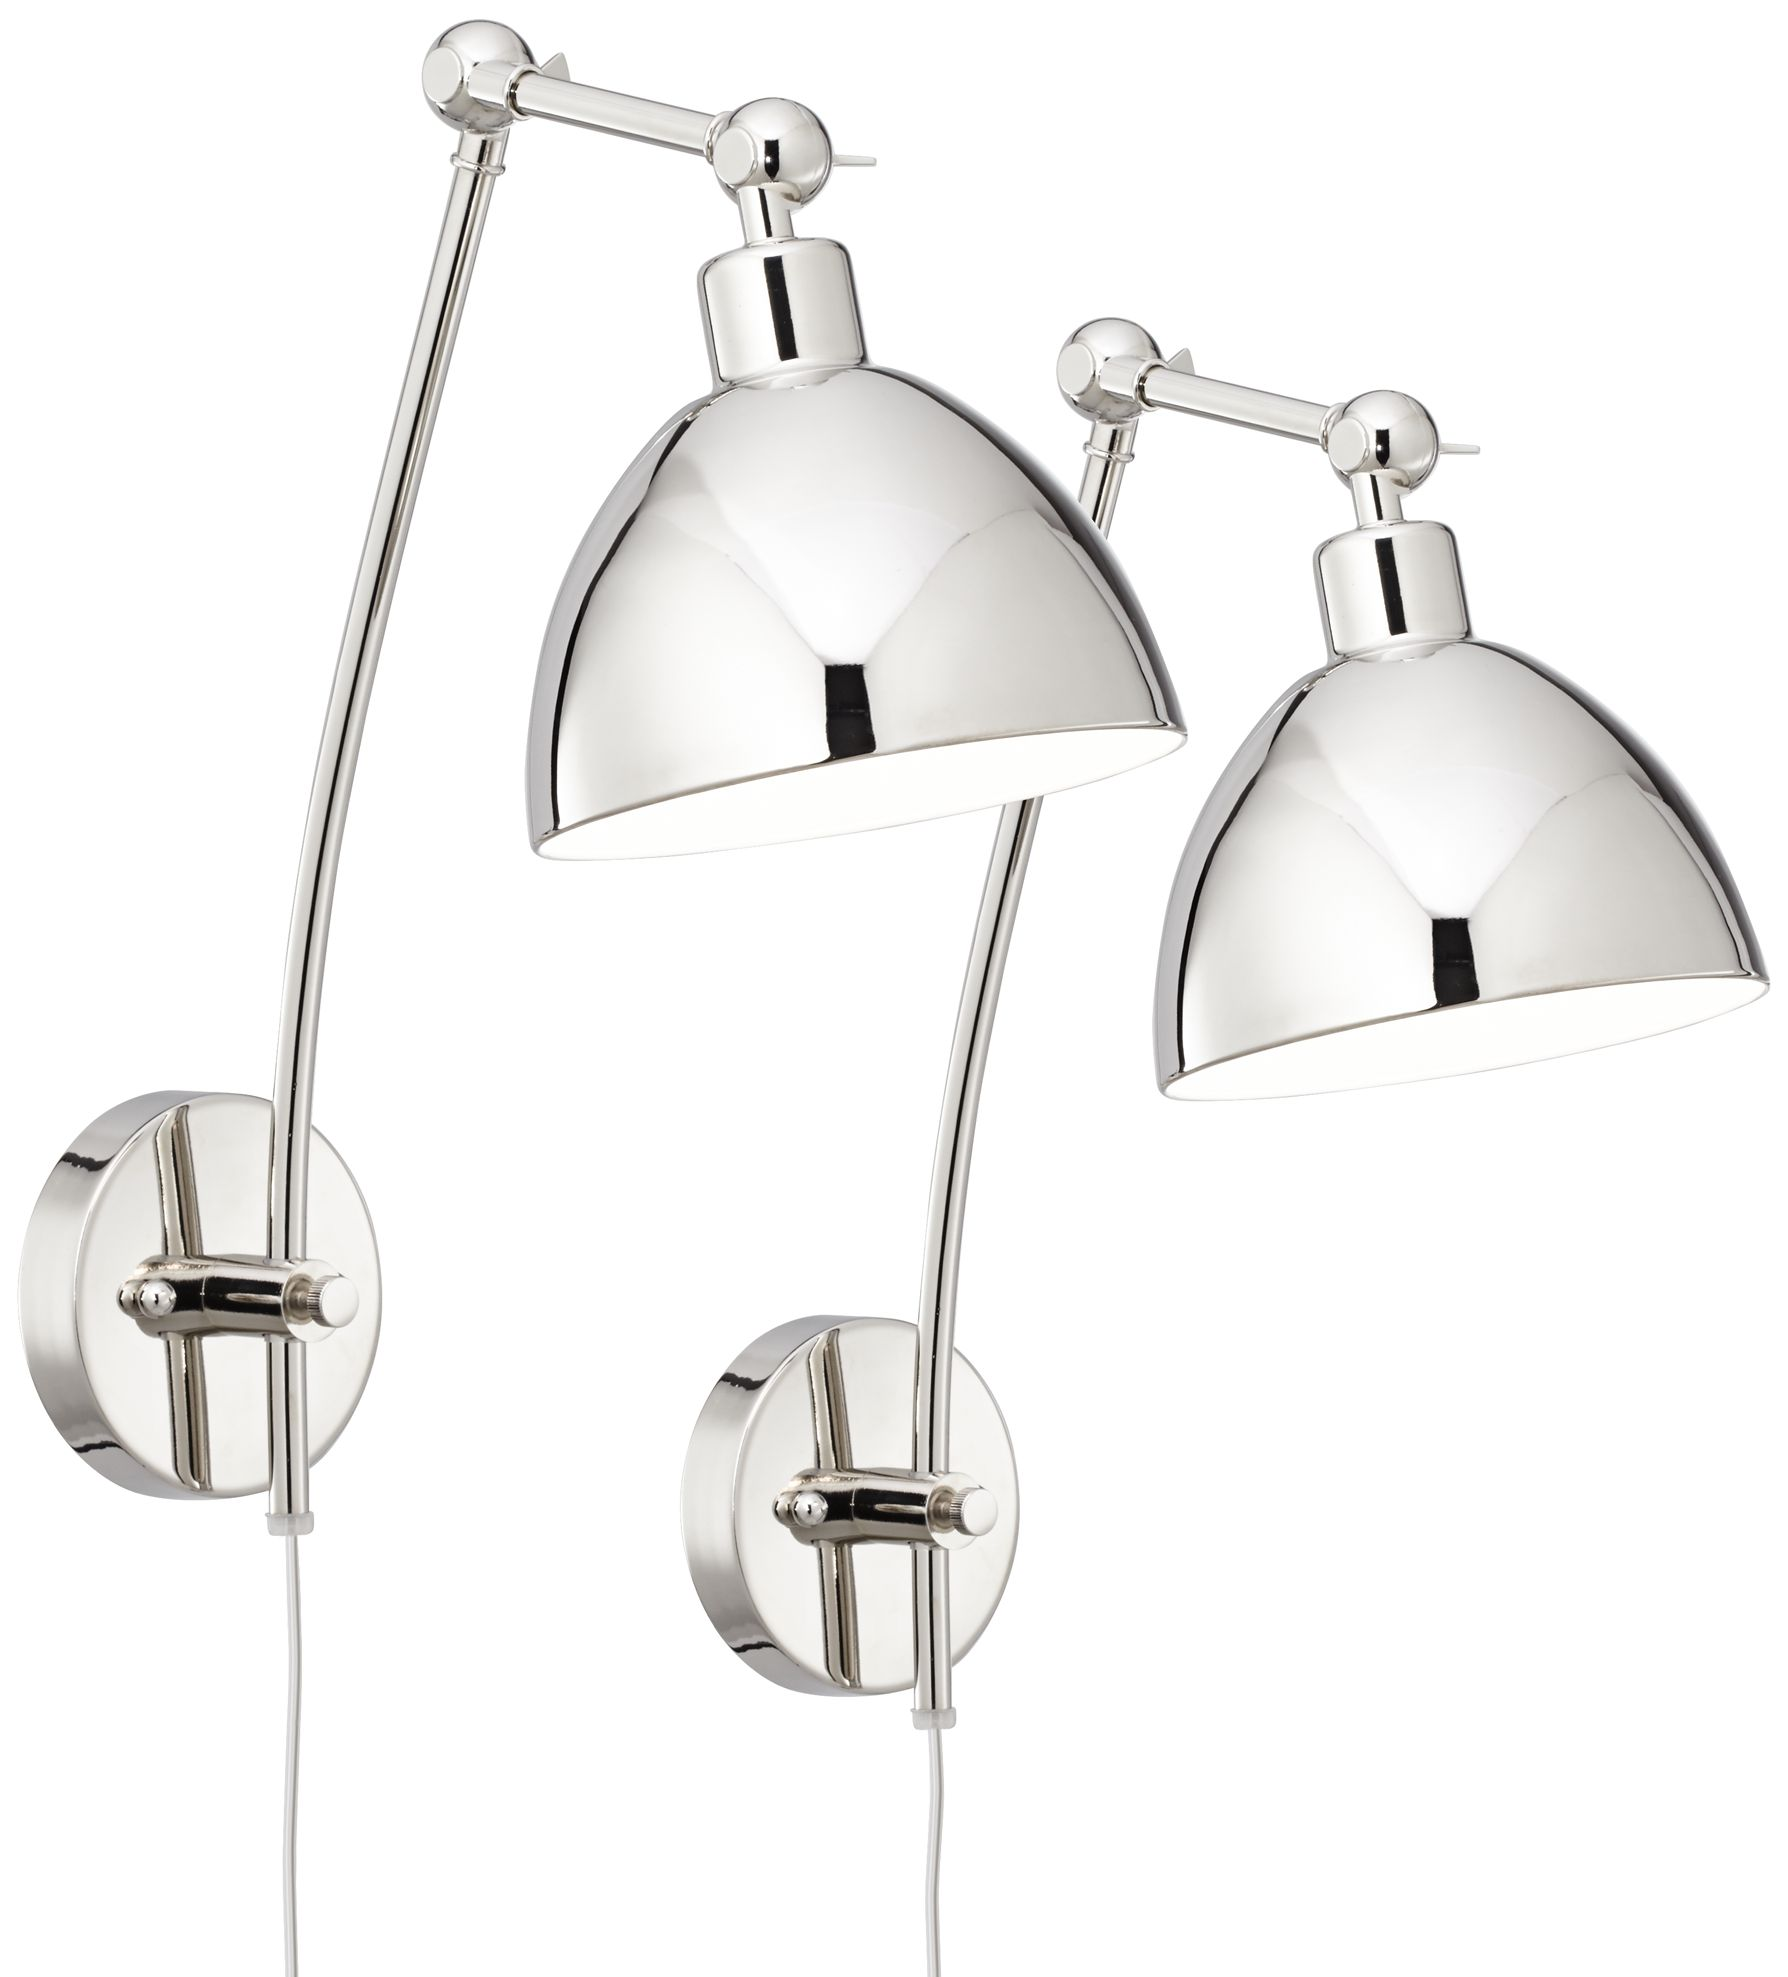 Superieur Delon Chrome Adjustable Plug In Wall Lamp Set Of 2